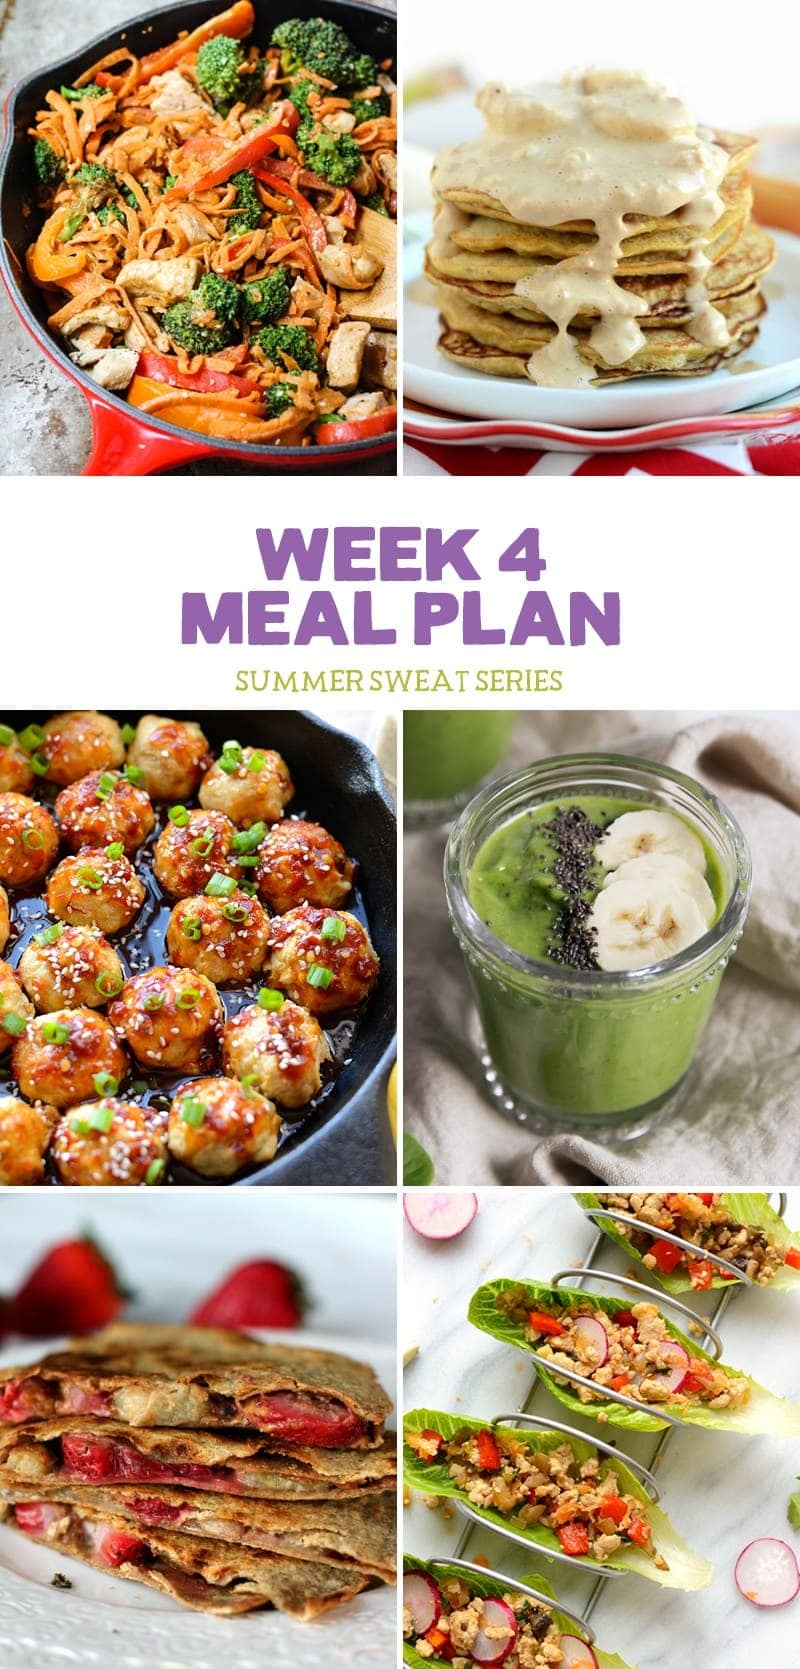 2016 Summer Sweat Series: Meal Plan Week 4